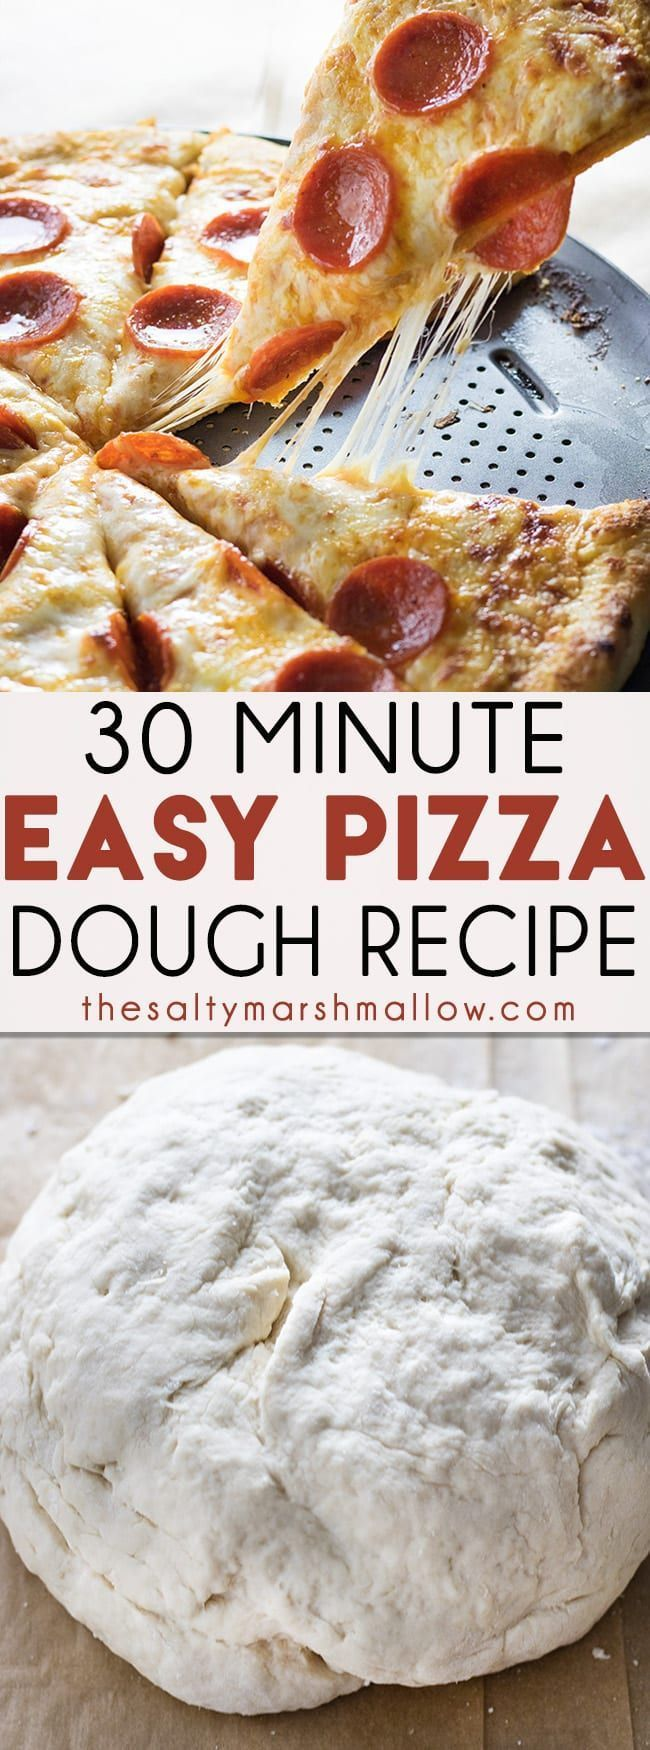 Miracle Pizza Dough Recipe is the absolute best easy basic pizza dough recipe This super easy pizza dough gives you a homemade thick buttery and chewy crust in only 30 mi...